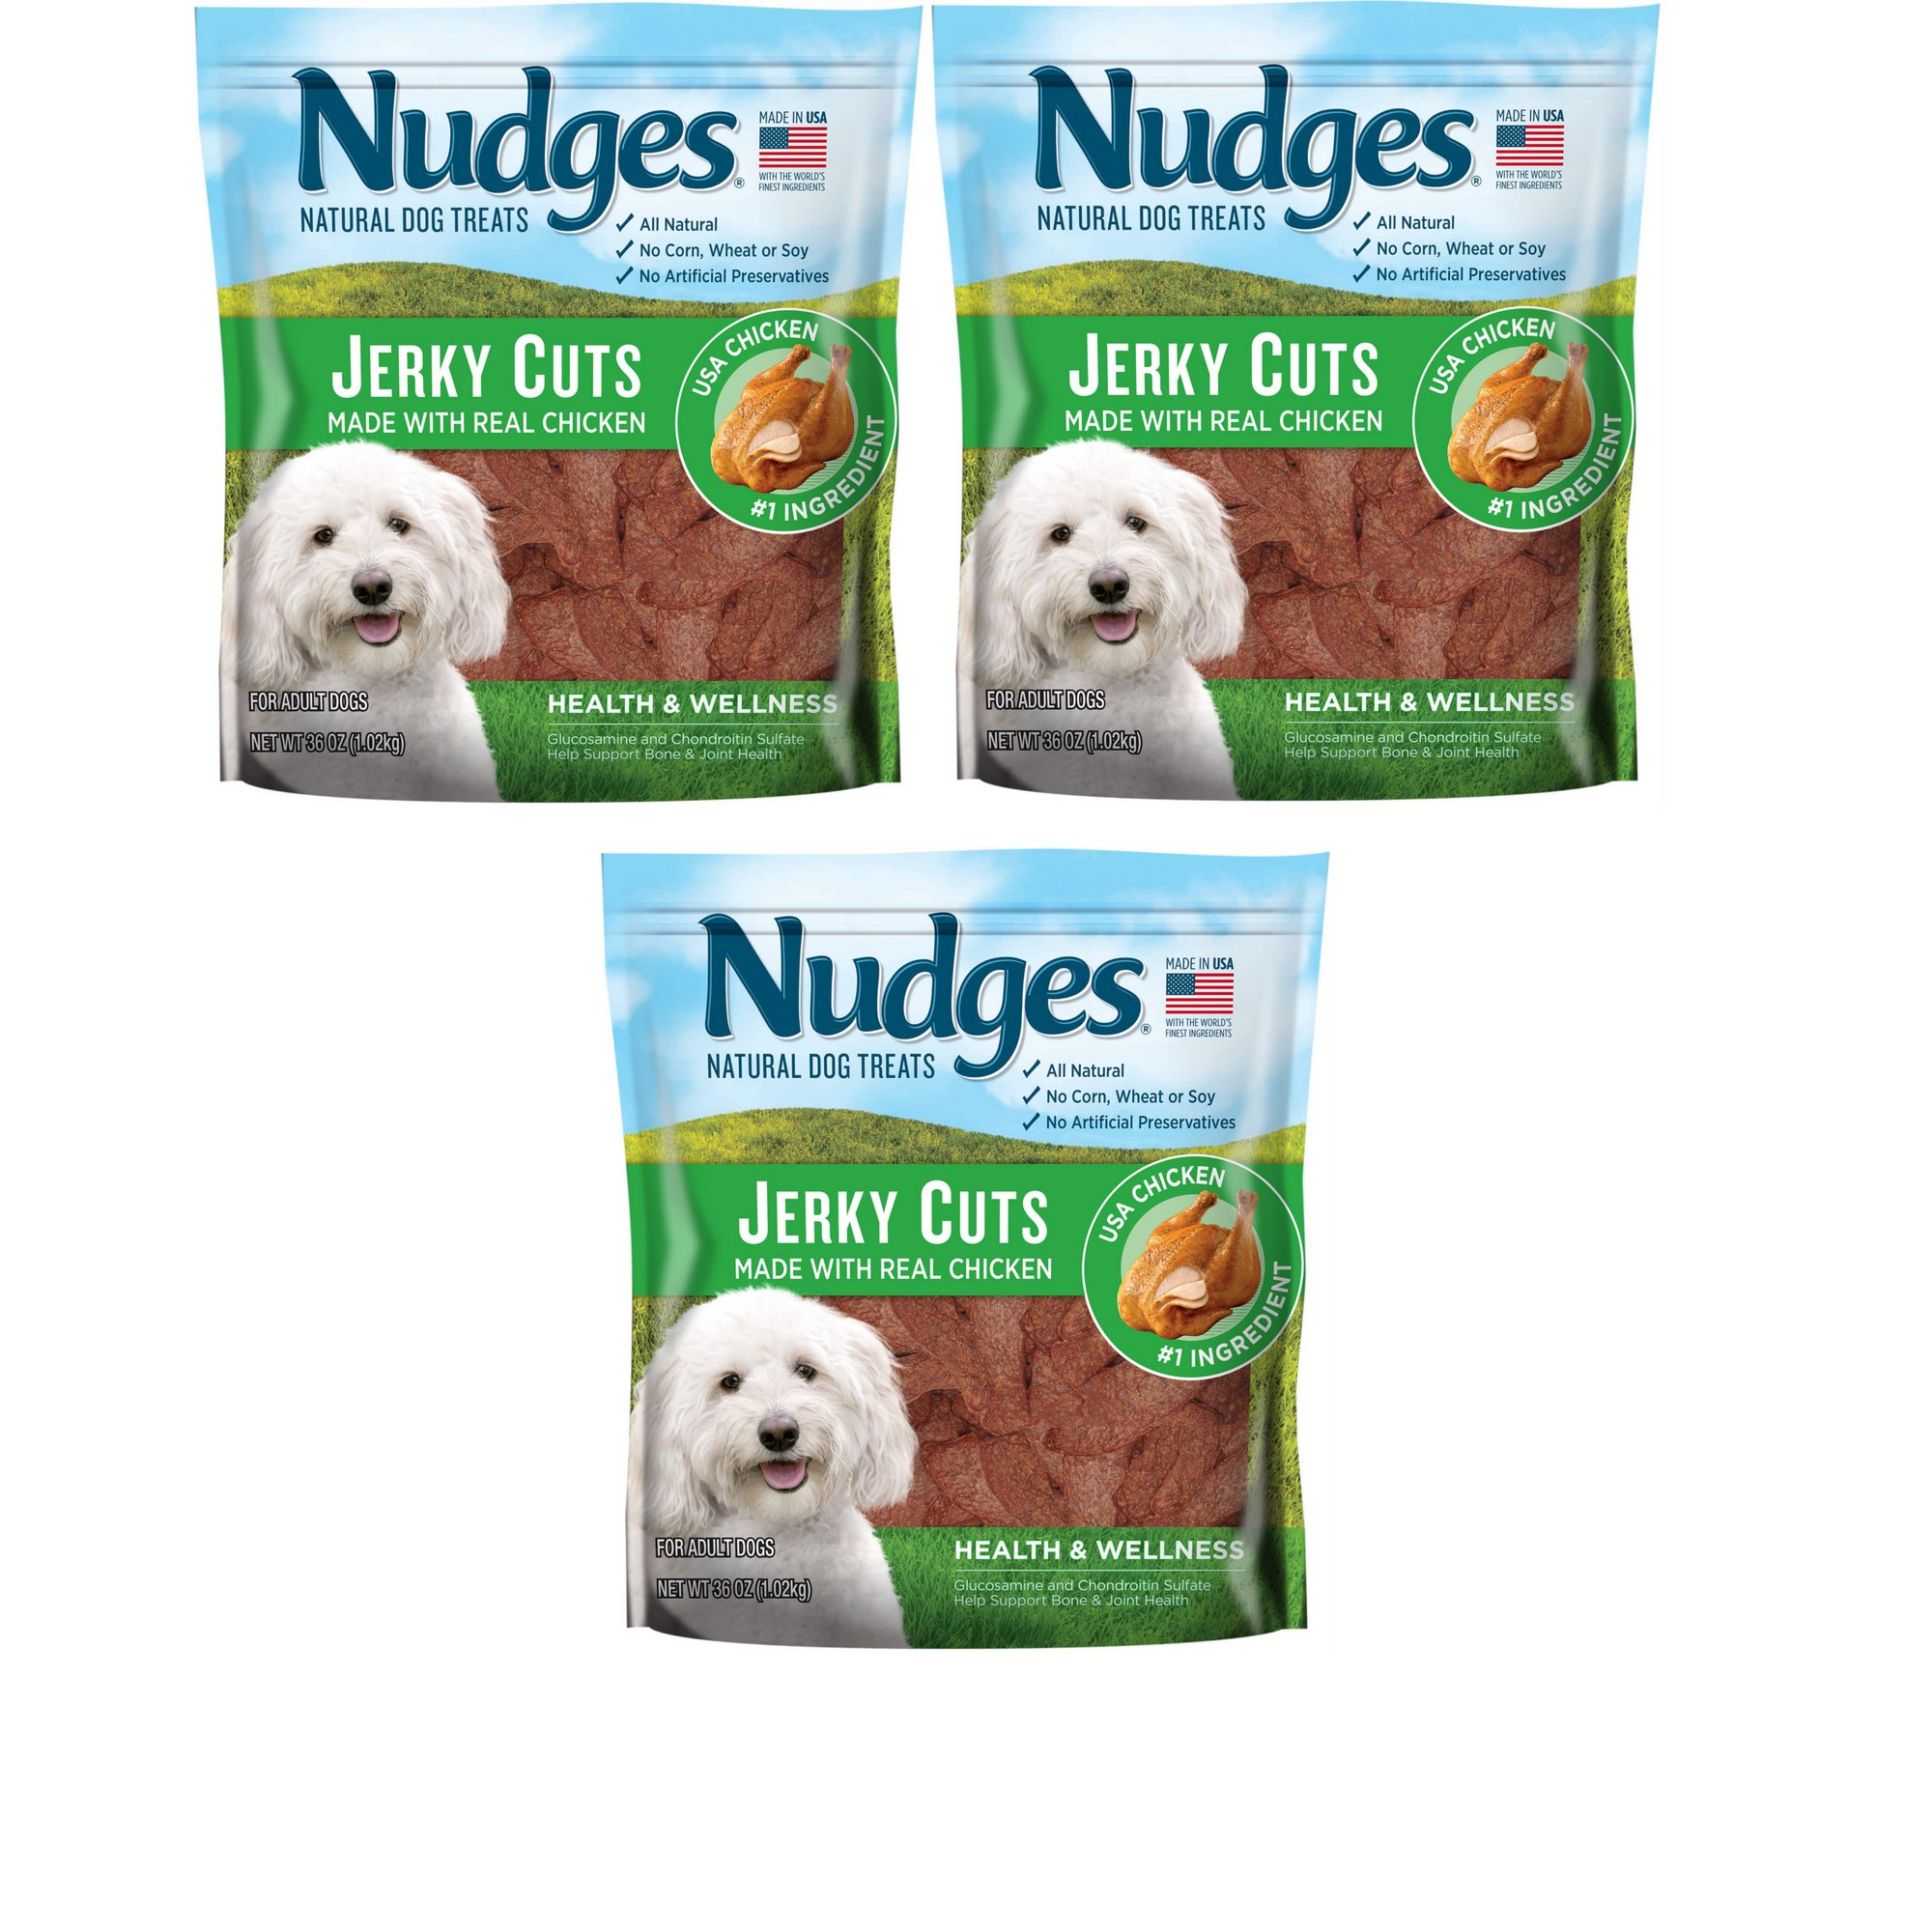 Nudges Health and Wellness Chicken Jerky Dog Treats, 36 oz. - 3 Pack